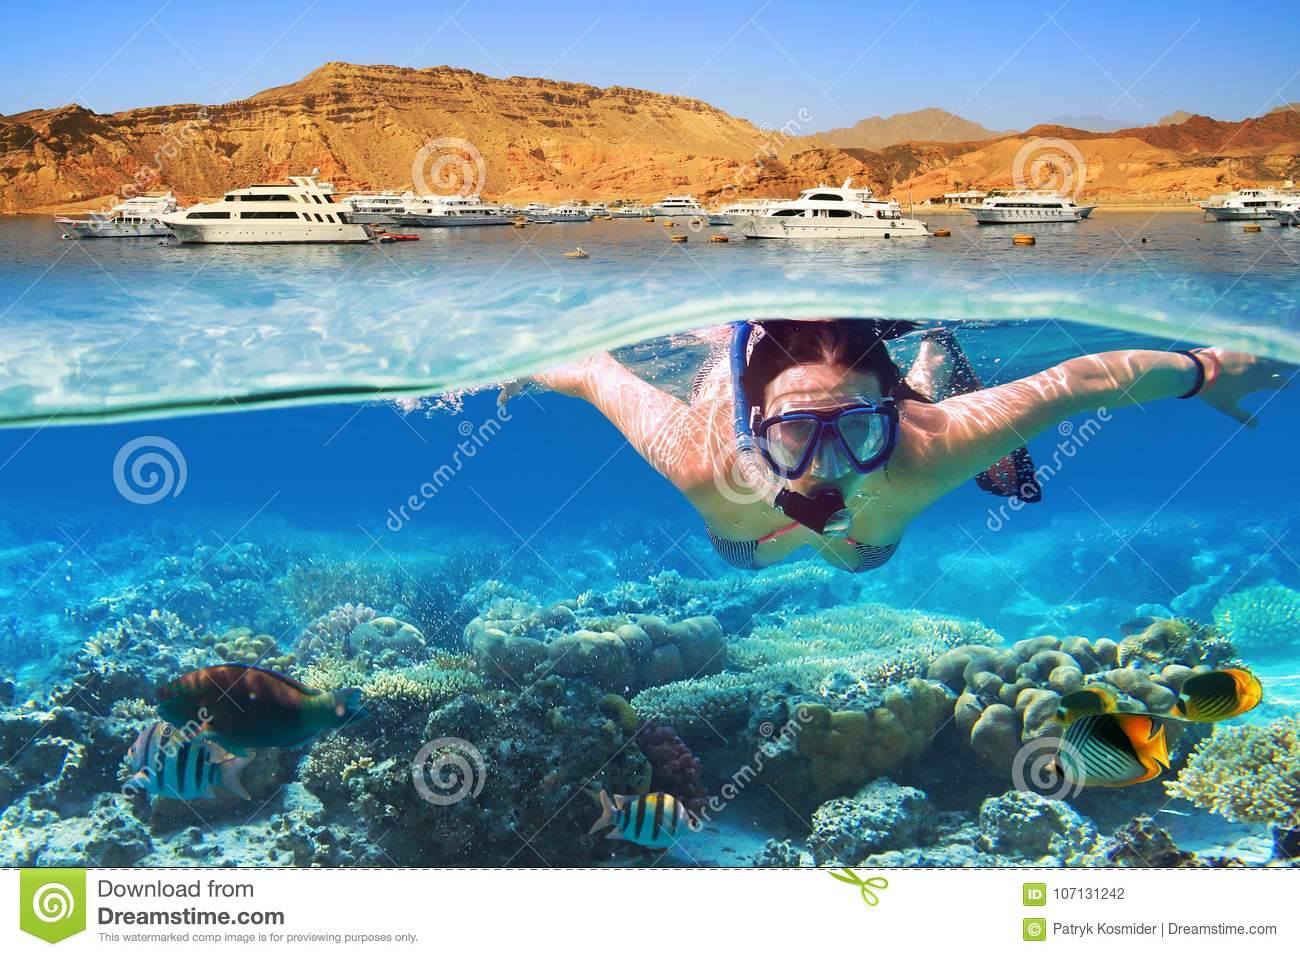 Snorkeling in the tropical water of Red Sea